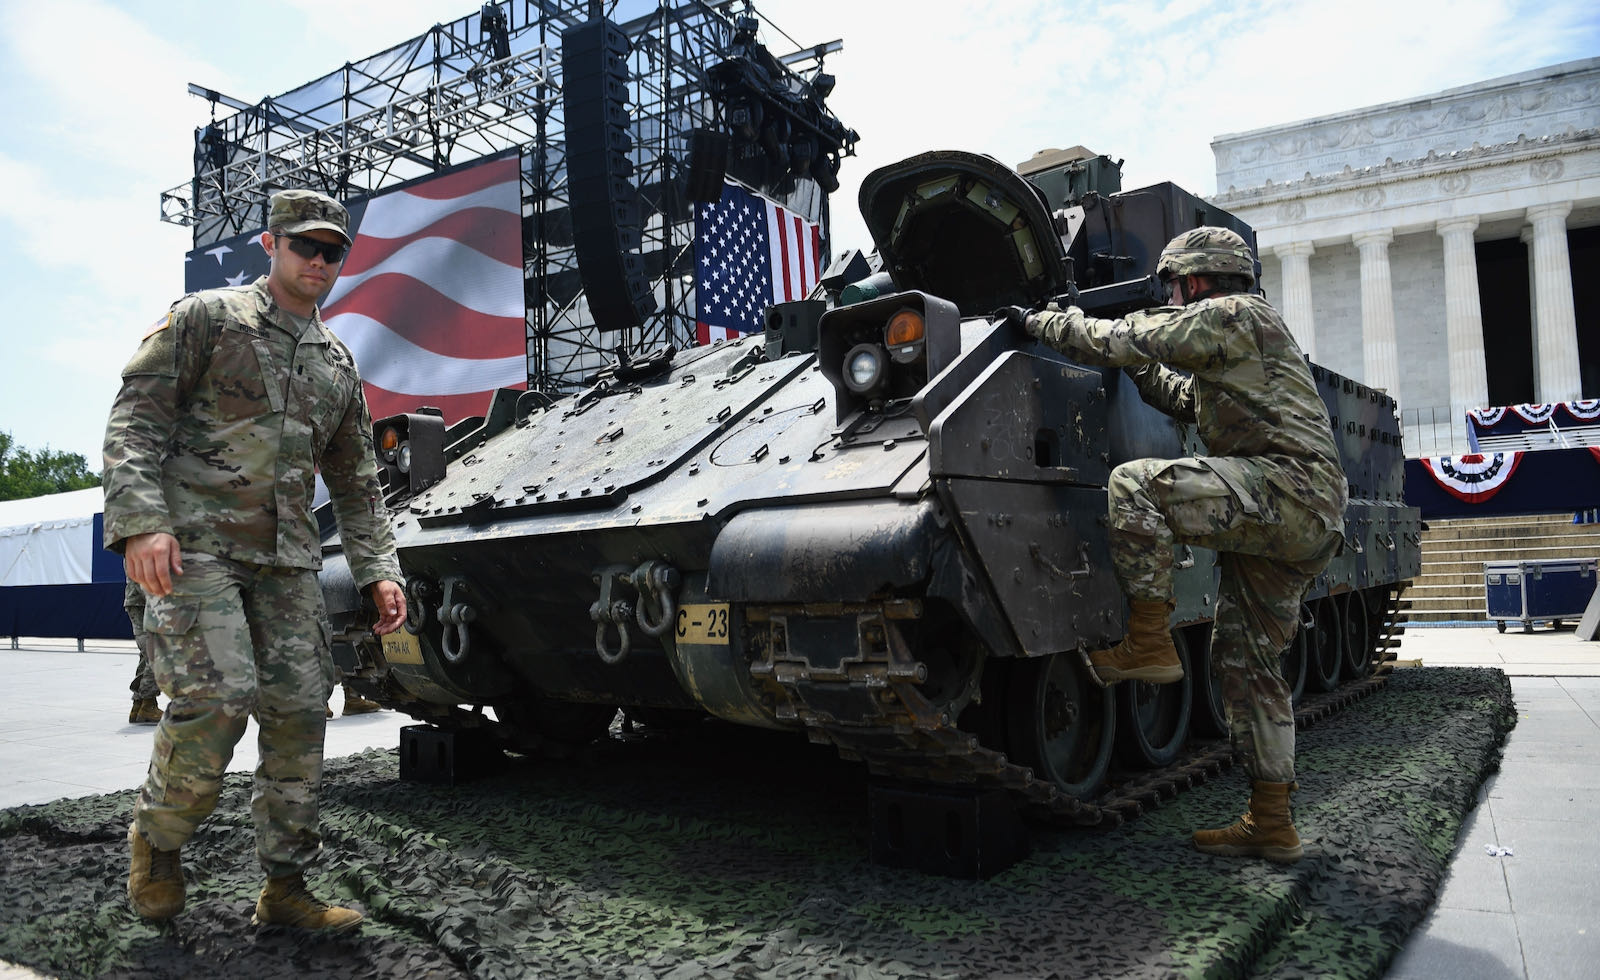 A Bradley Fighting Vehicle parked in front of the Lincoln Memorial